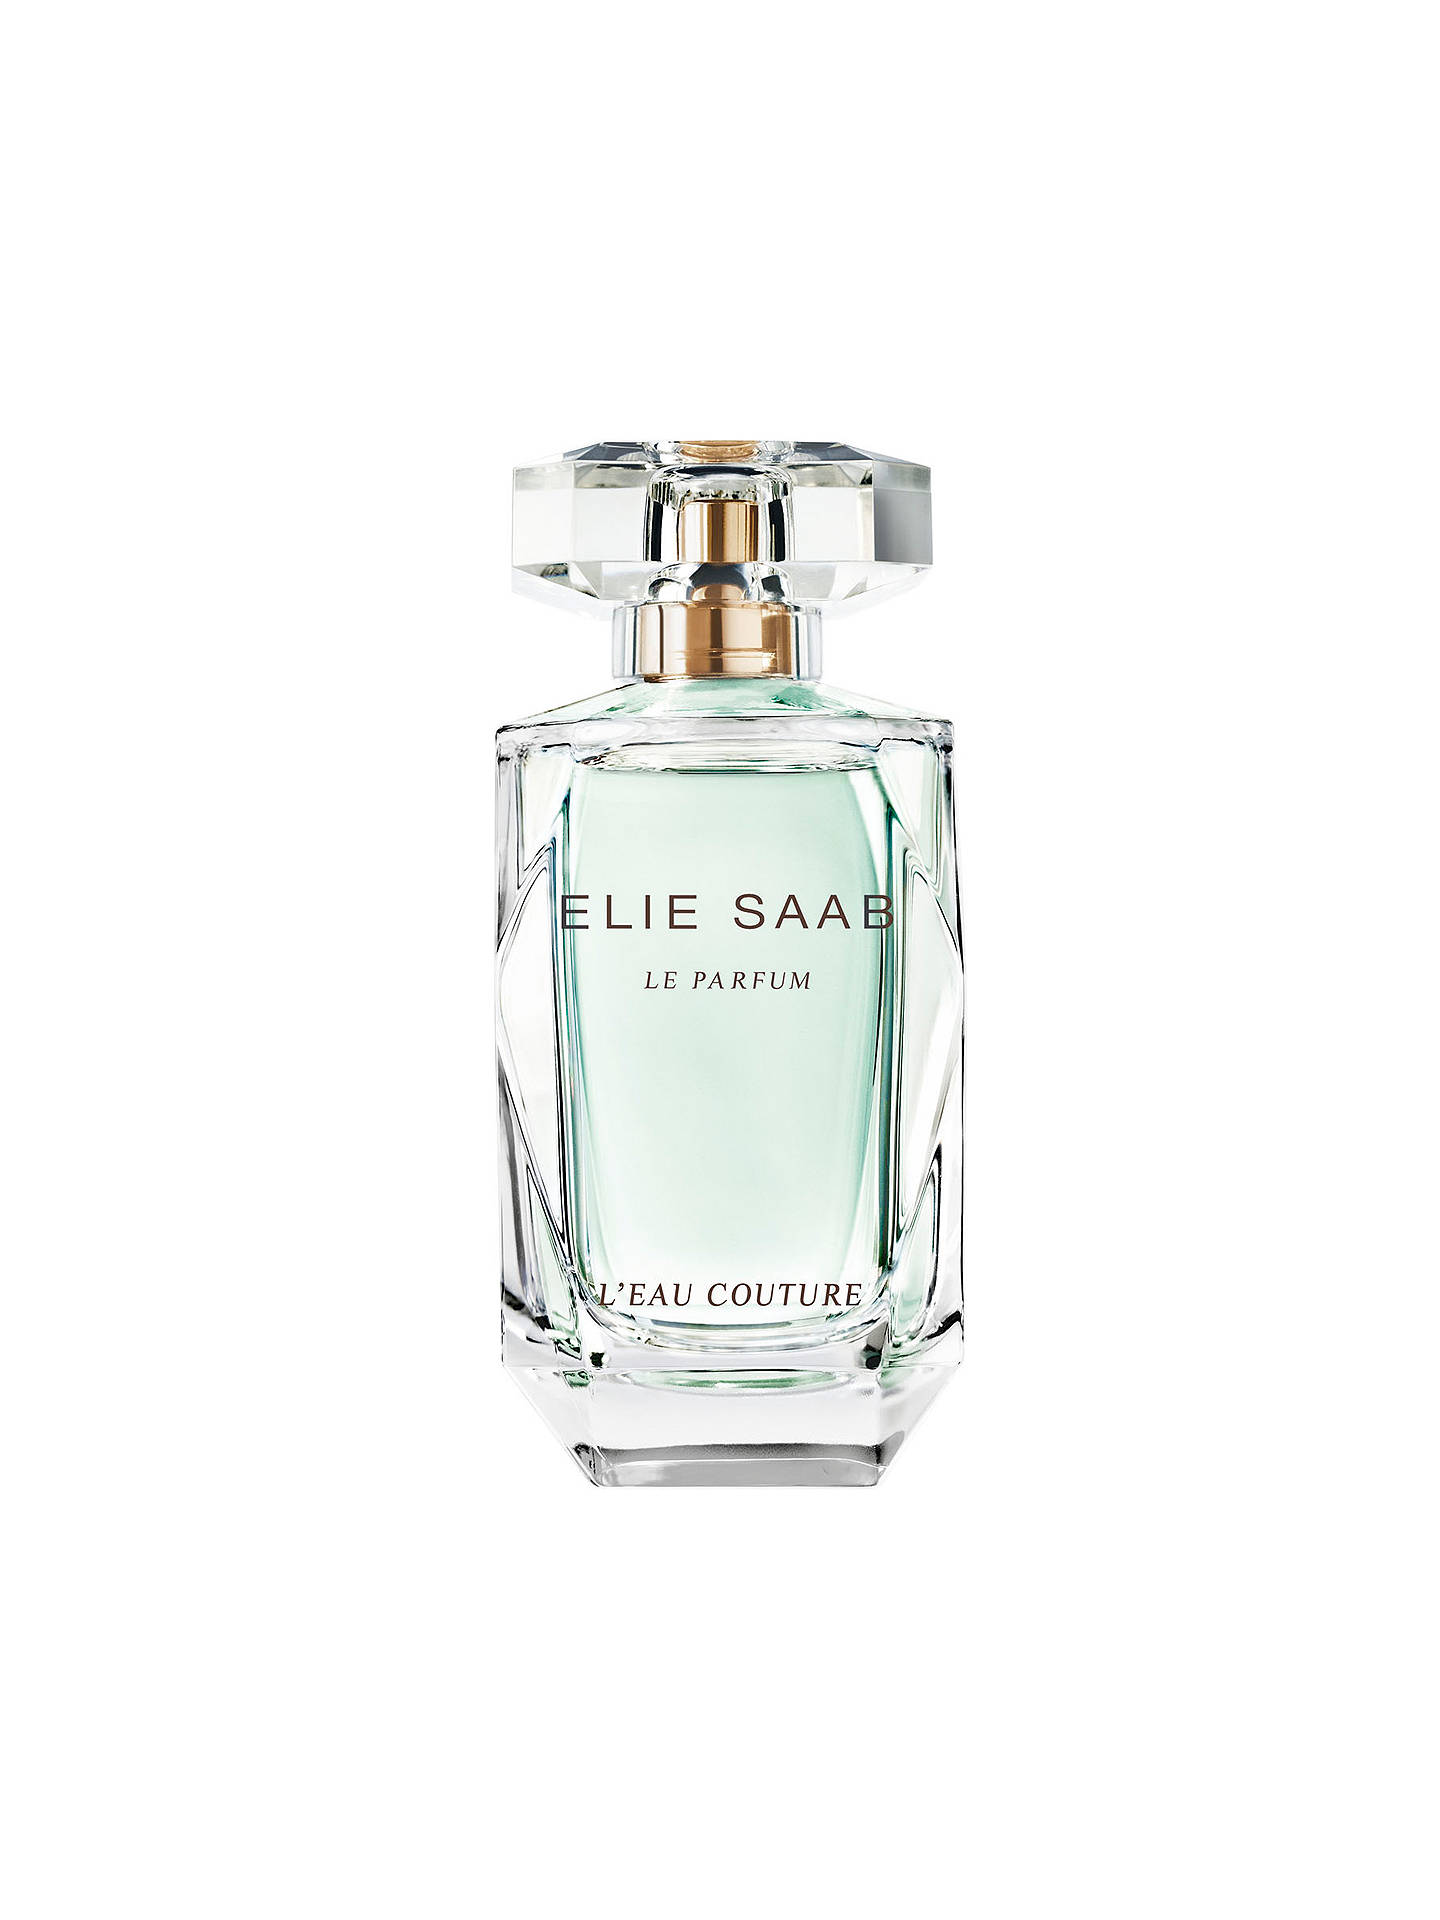 elie saab le parfum l 39 eau couture eau de toilette at john. Black Bedroom Furniture Sets. Home Design Ideas